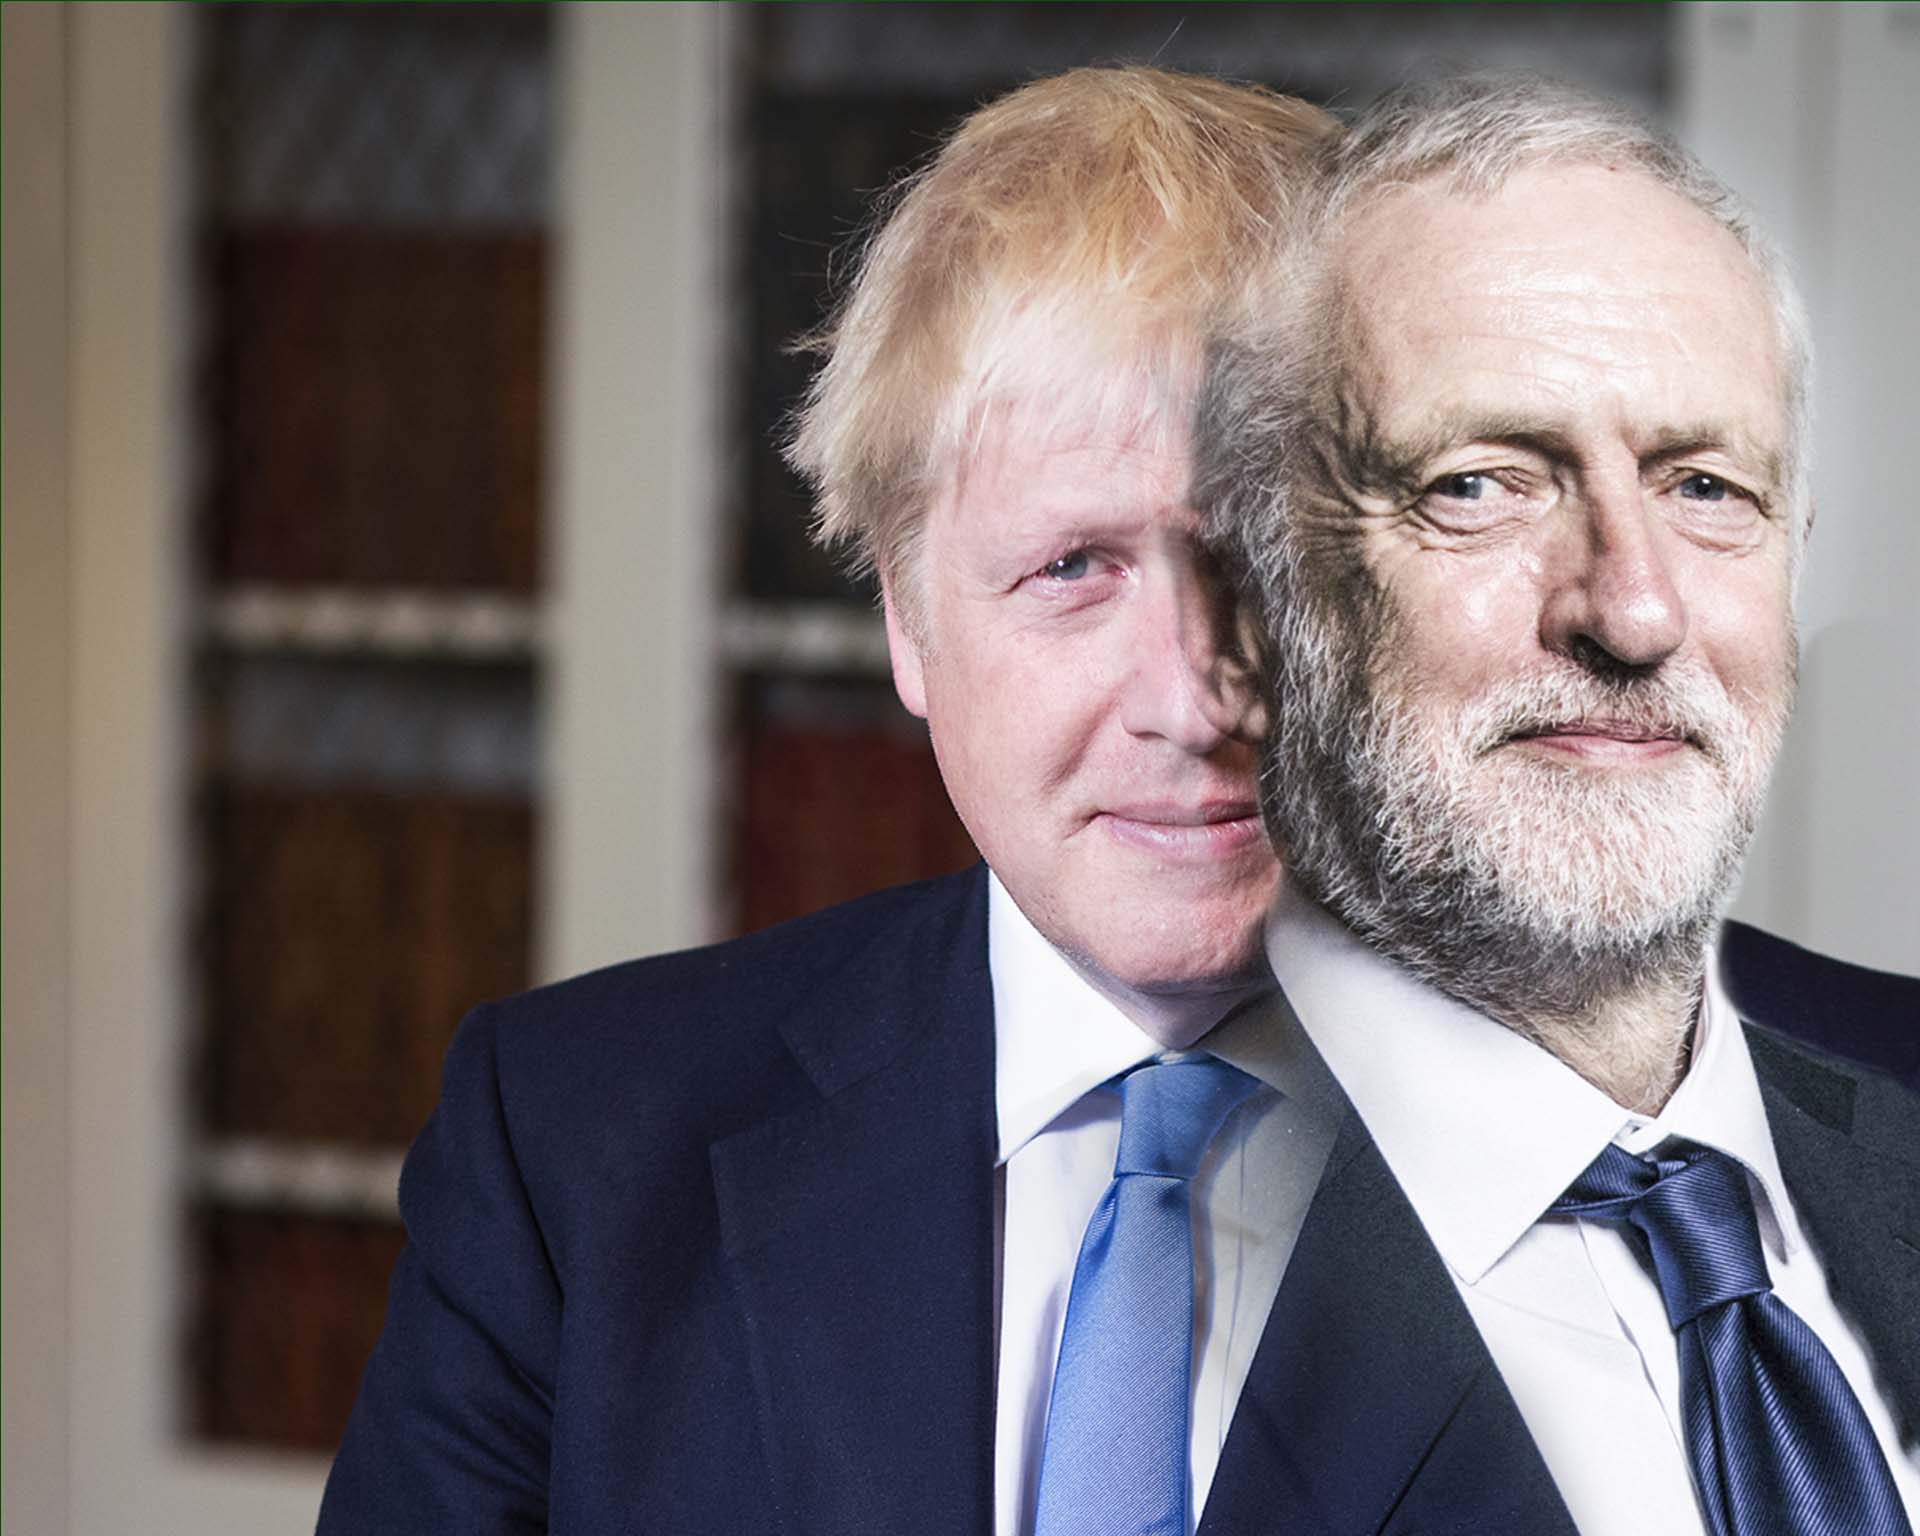 Boris and Jeremy it only needs Brett to complete the clowns